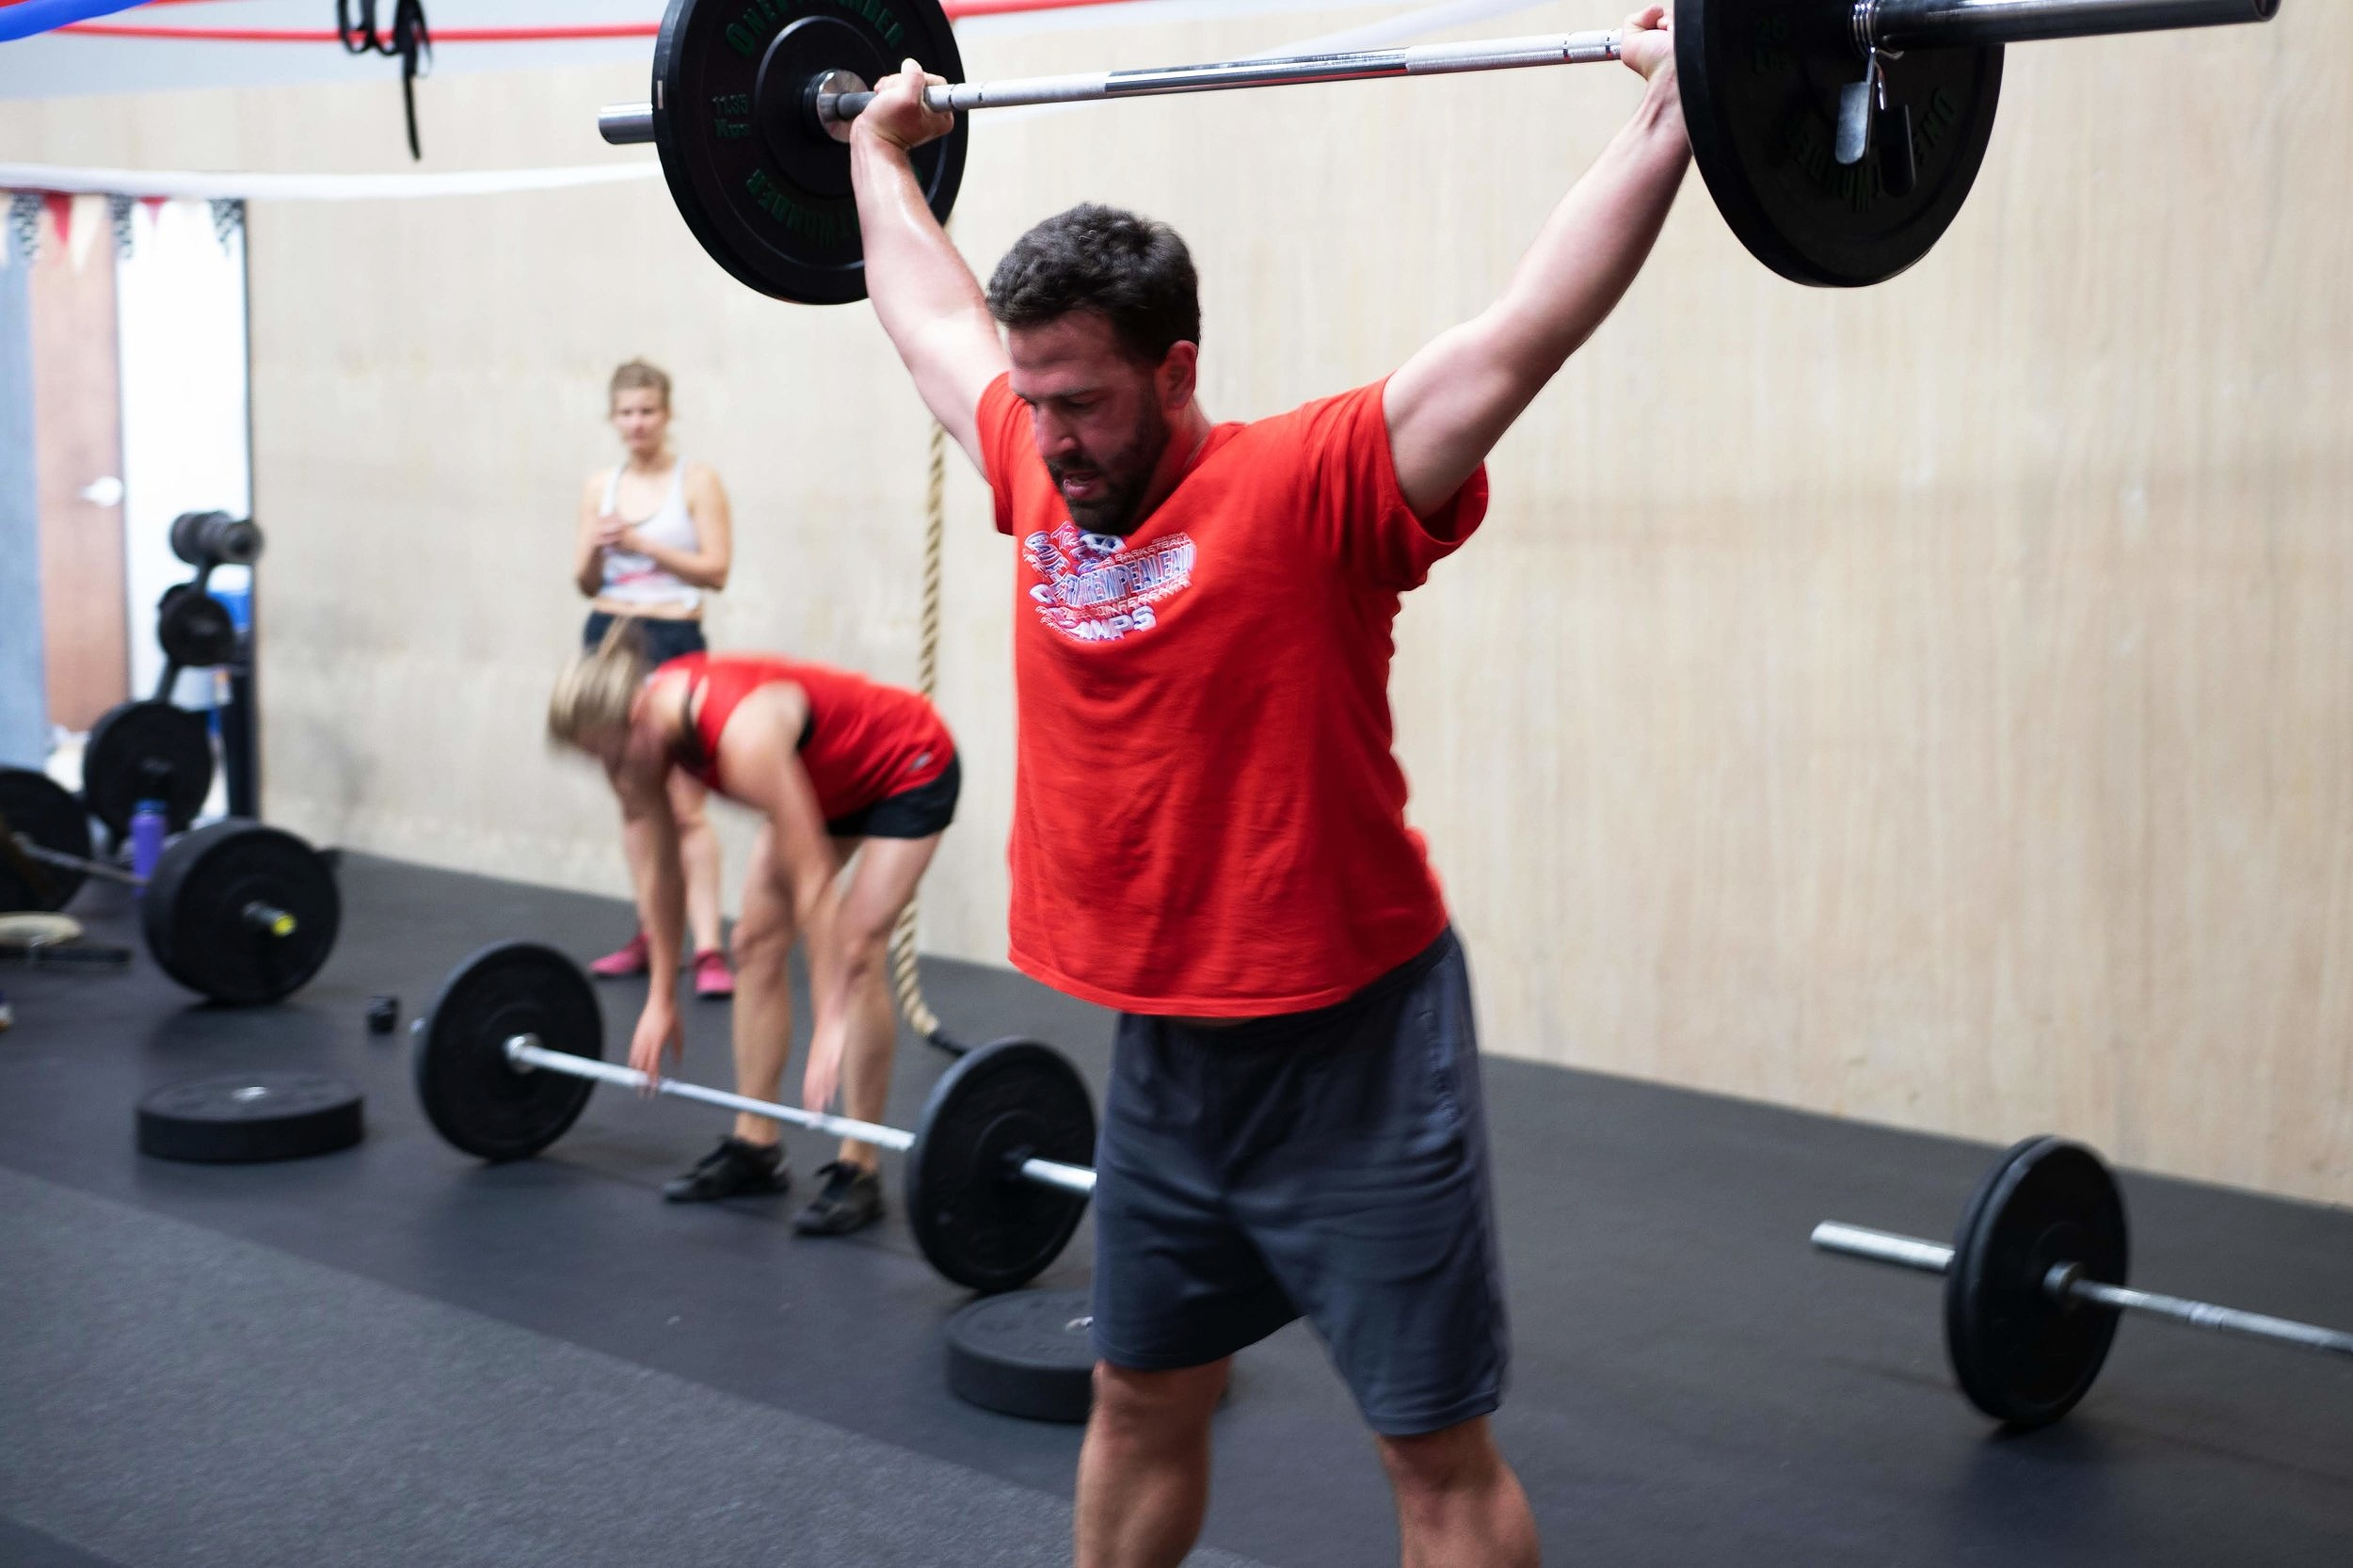 Barbell Club - Training focused around the olympic weightlifting movements, the snatch and clean & jerk. Sessions led by USA Weightlifting coach to develop power, strength, and speed. We also prep athletes to compete in weightlifting competitions.